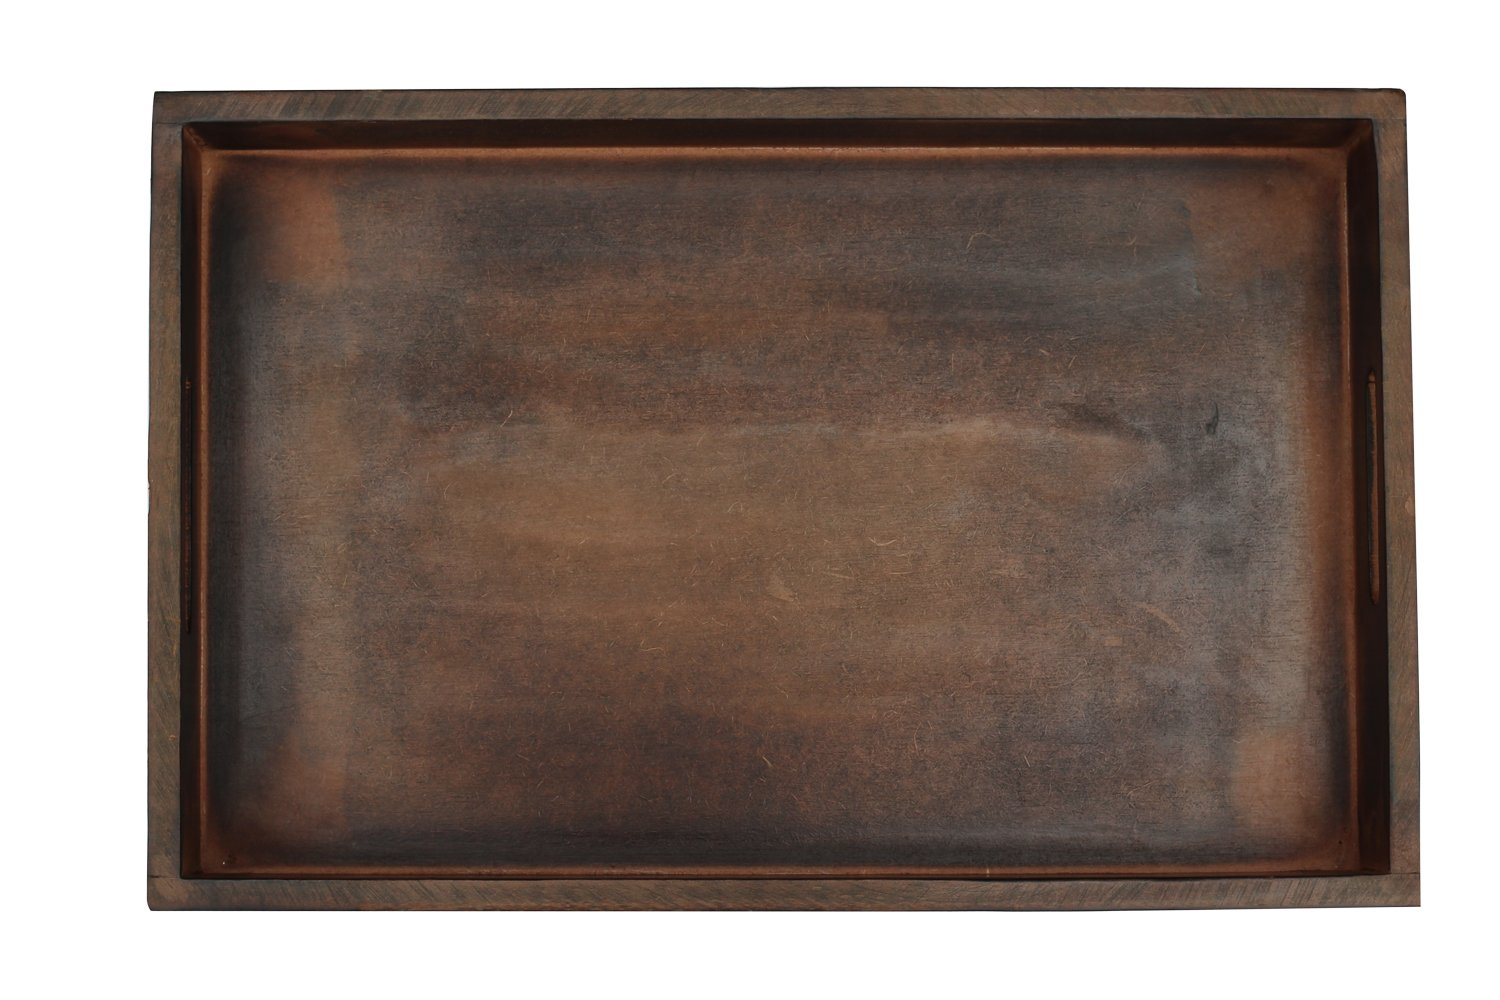 SouvNear Wooden Serving Handles - 17 x 11 Inches Large Dark Brown - Decorative Vintage Look Service Tea, Coffee, Breakfast Trays by SouvNear (Image #5)